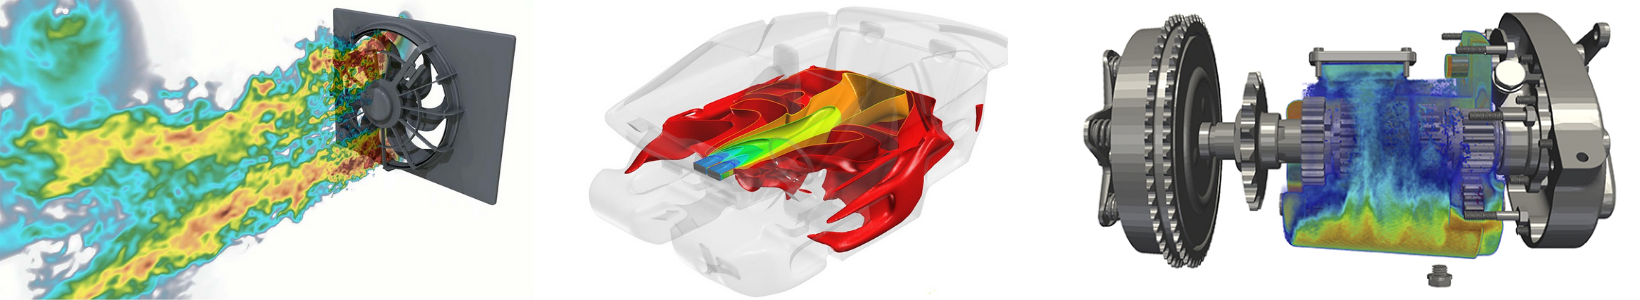 Altair_CFD_applications_examples